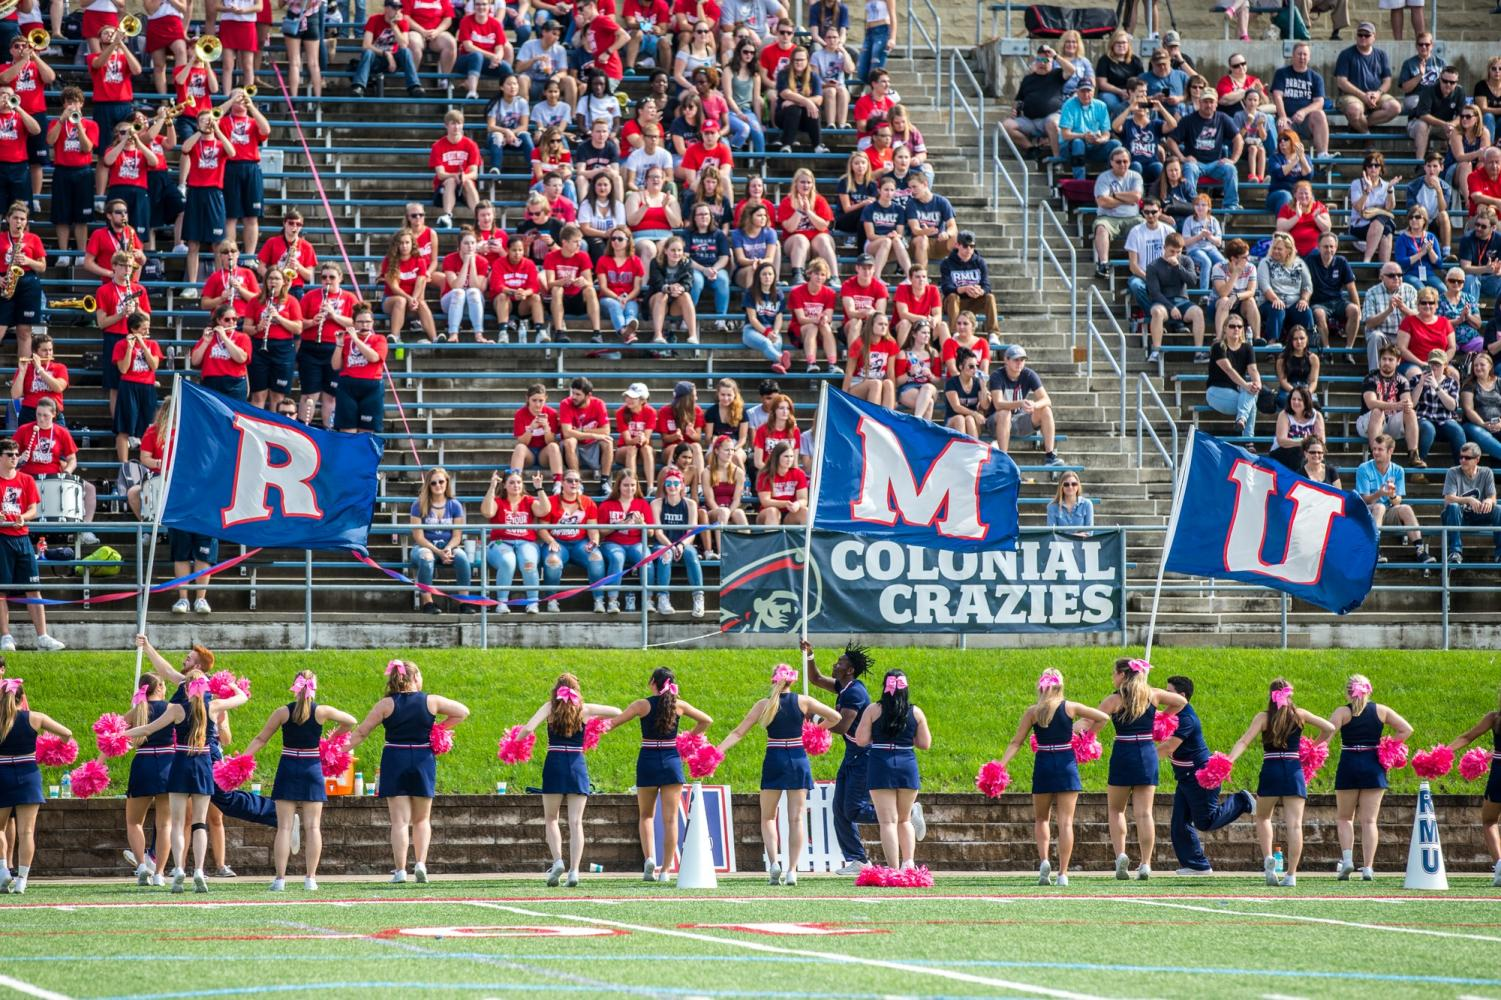 Cheerleaders lead the Colonial Crazies in a cheer. (David Auth/RMU Sentry Media) Photo credit: David Auth